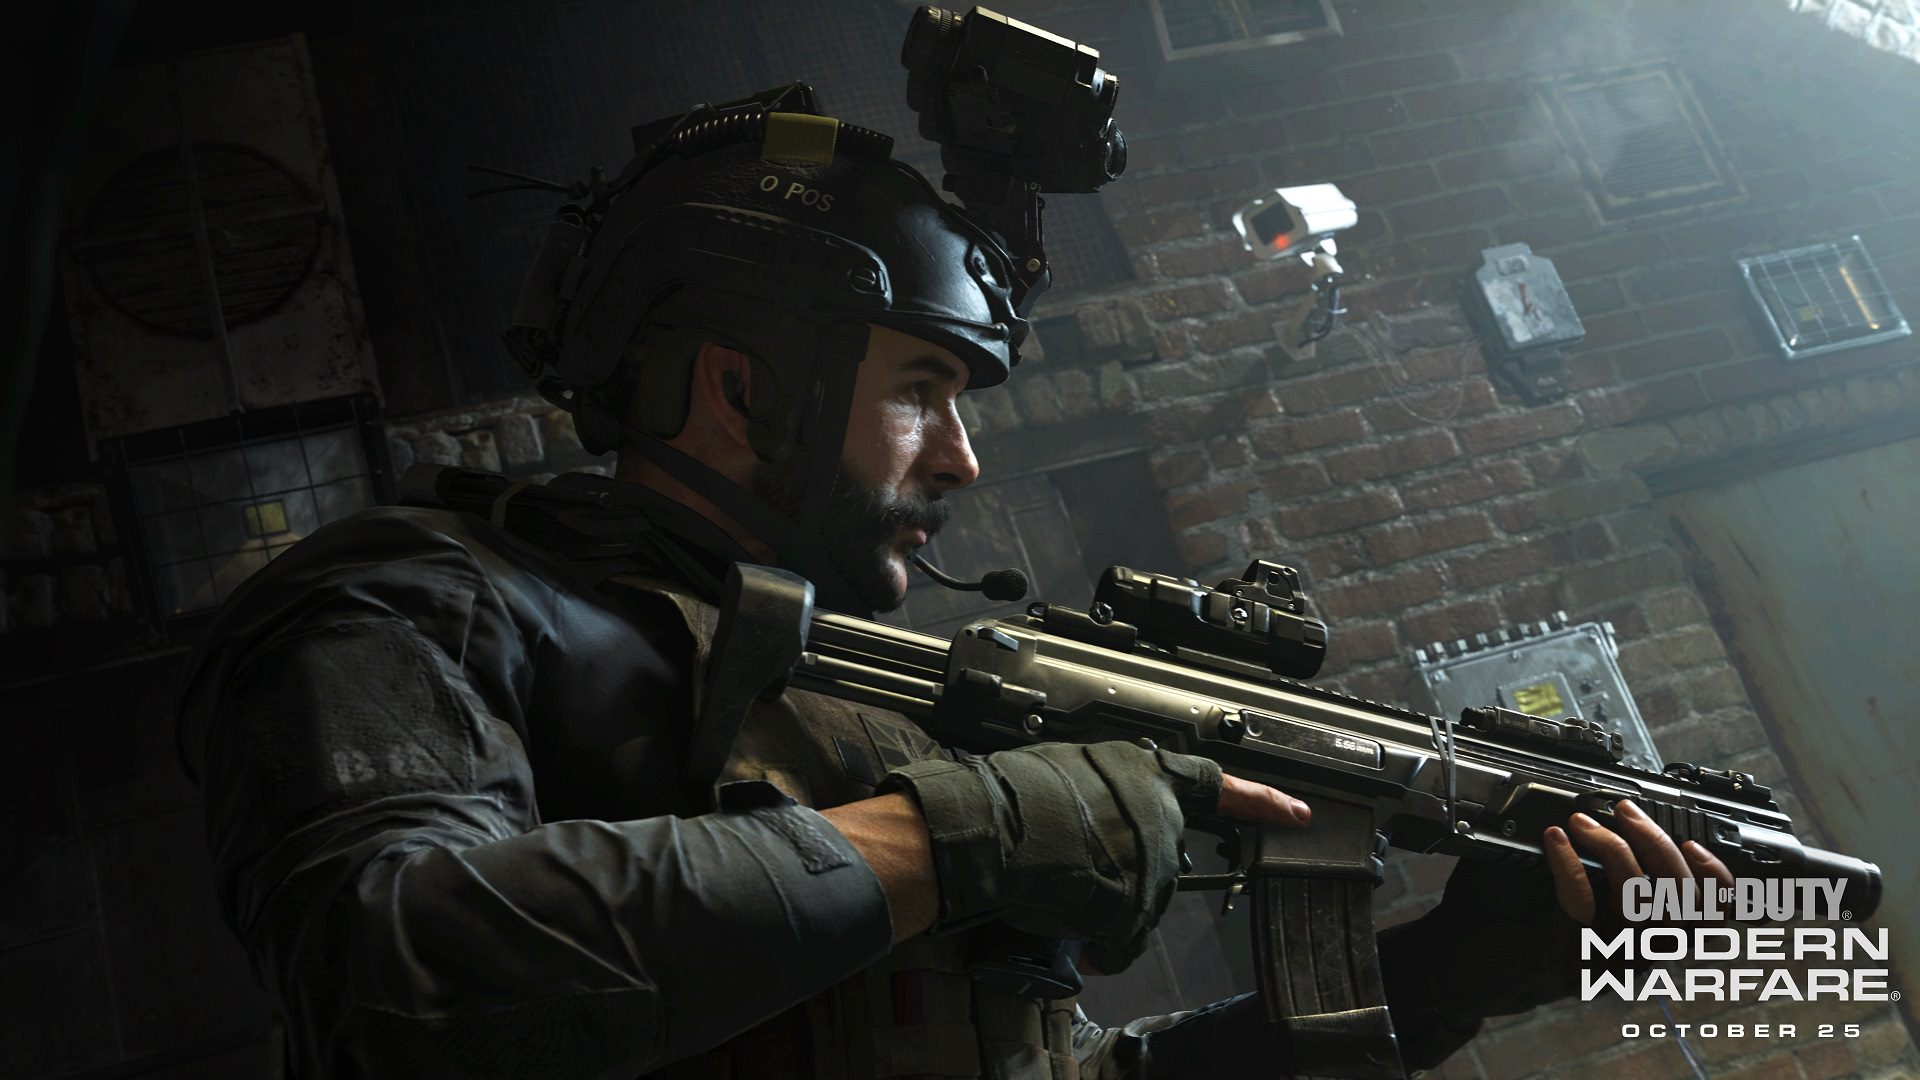 Comment fonctionnera le cross-play pour Call of Duty Modern Warfare